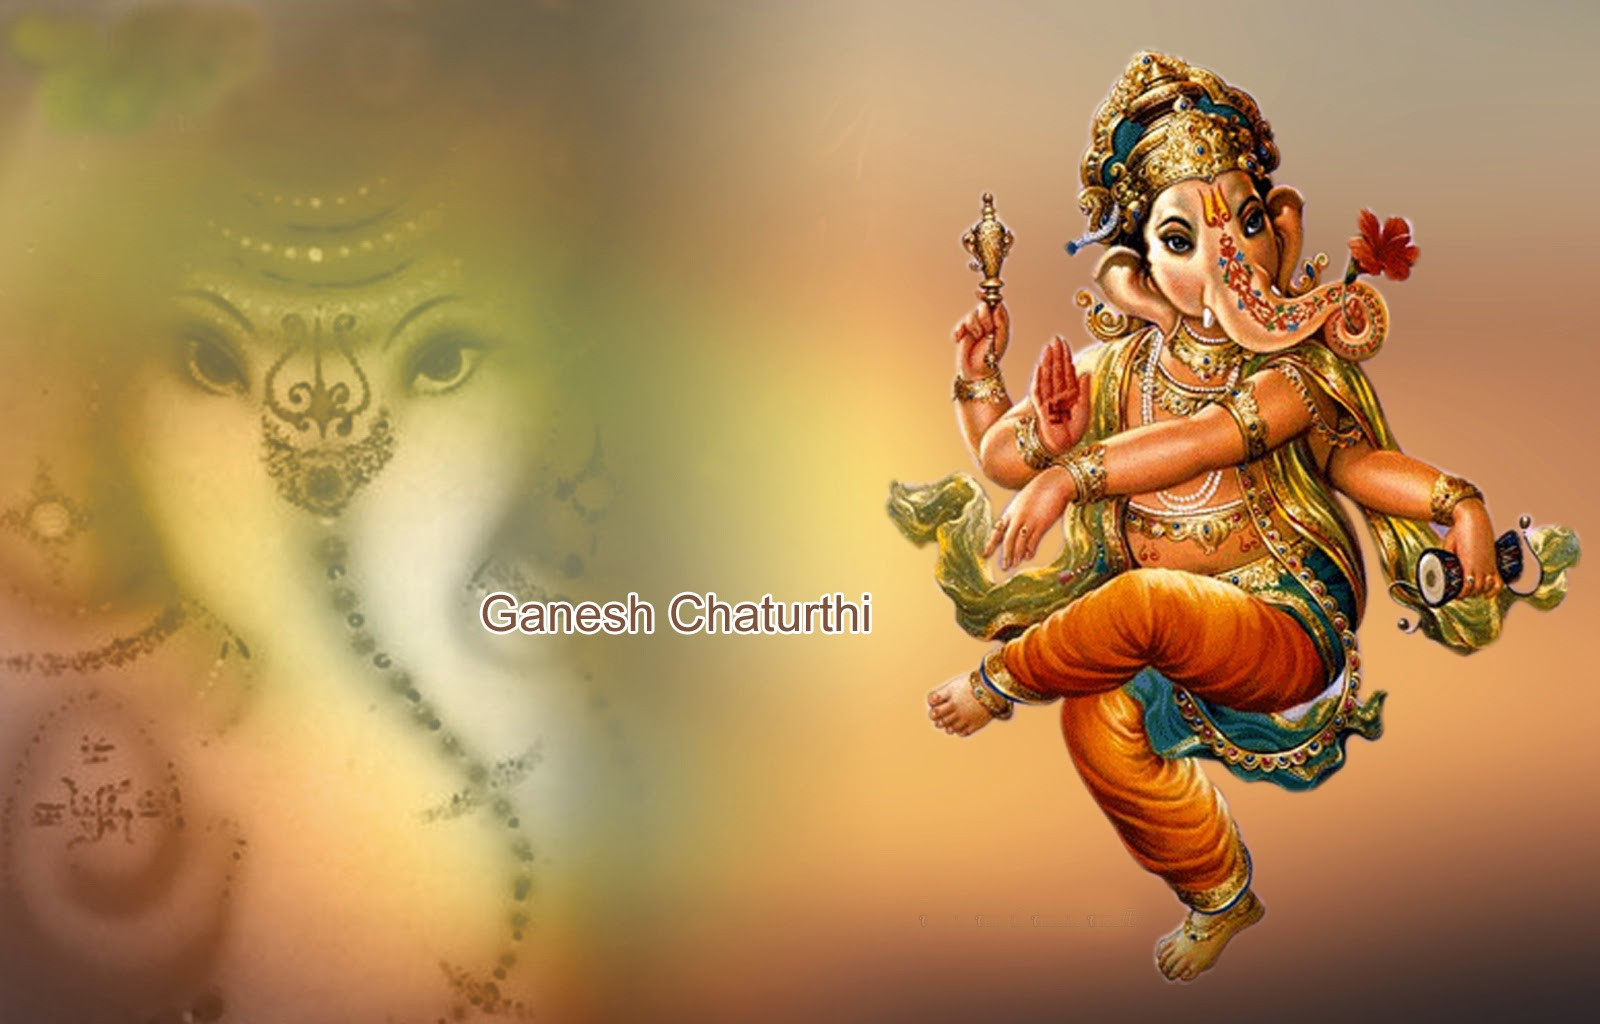 Cute Ganesh Ji Hd Wallpaper Ganesh Chaturthi Greetings Images Wishes Cards Festival